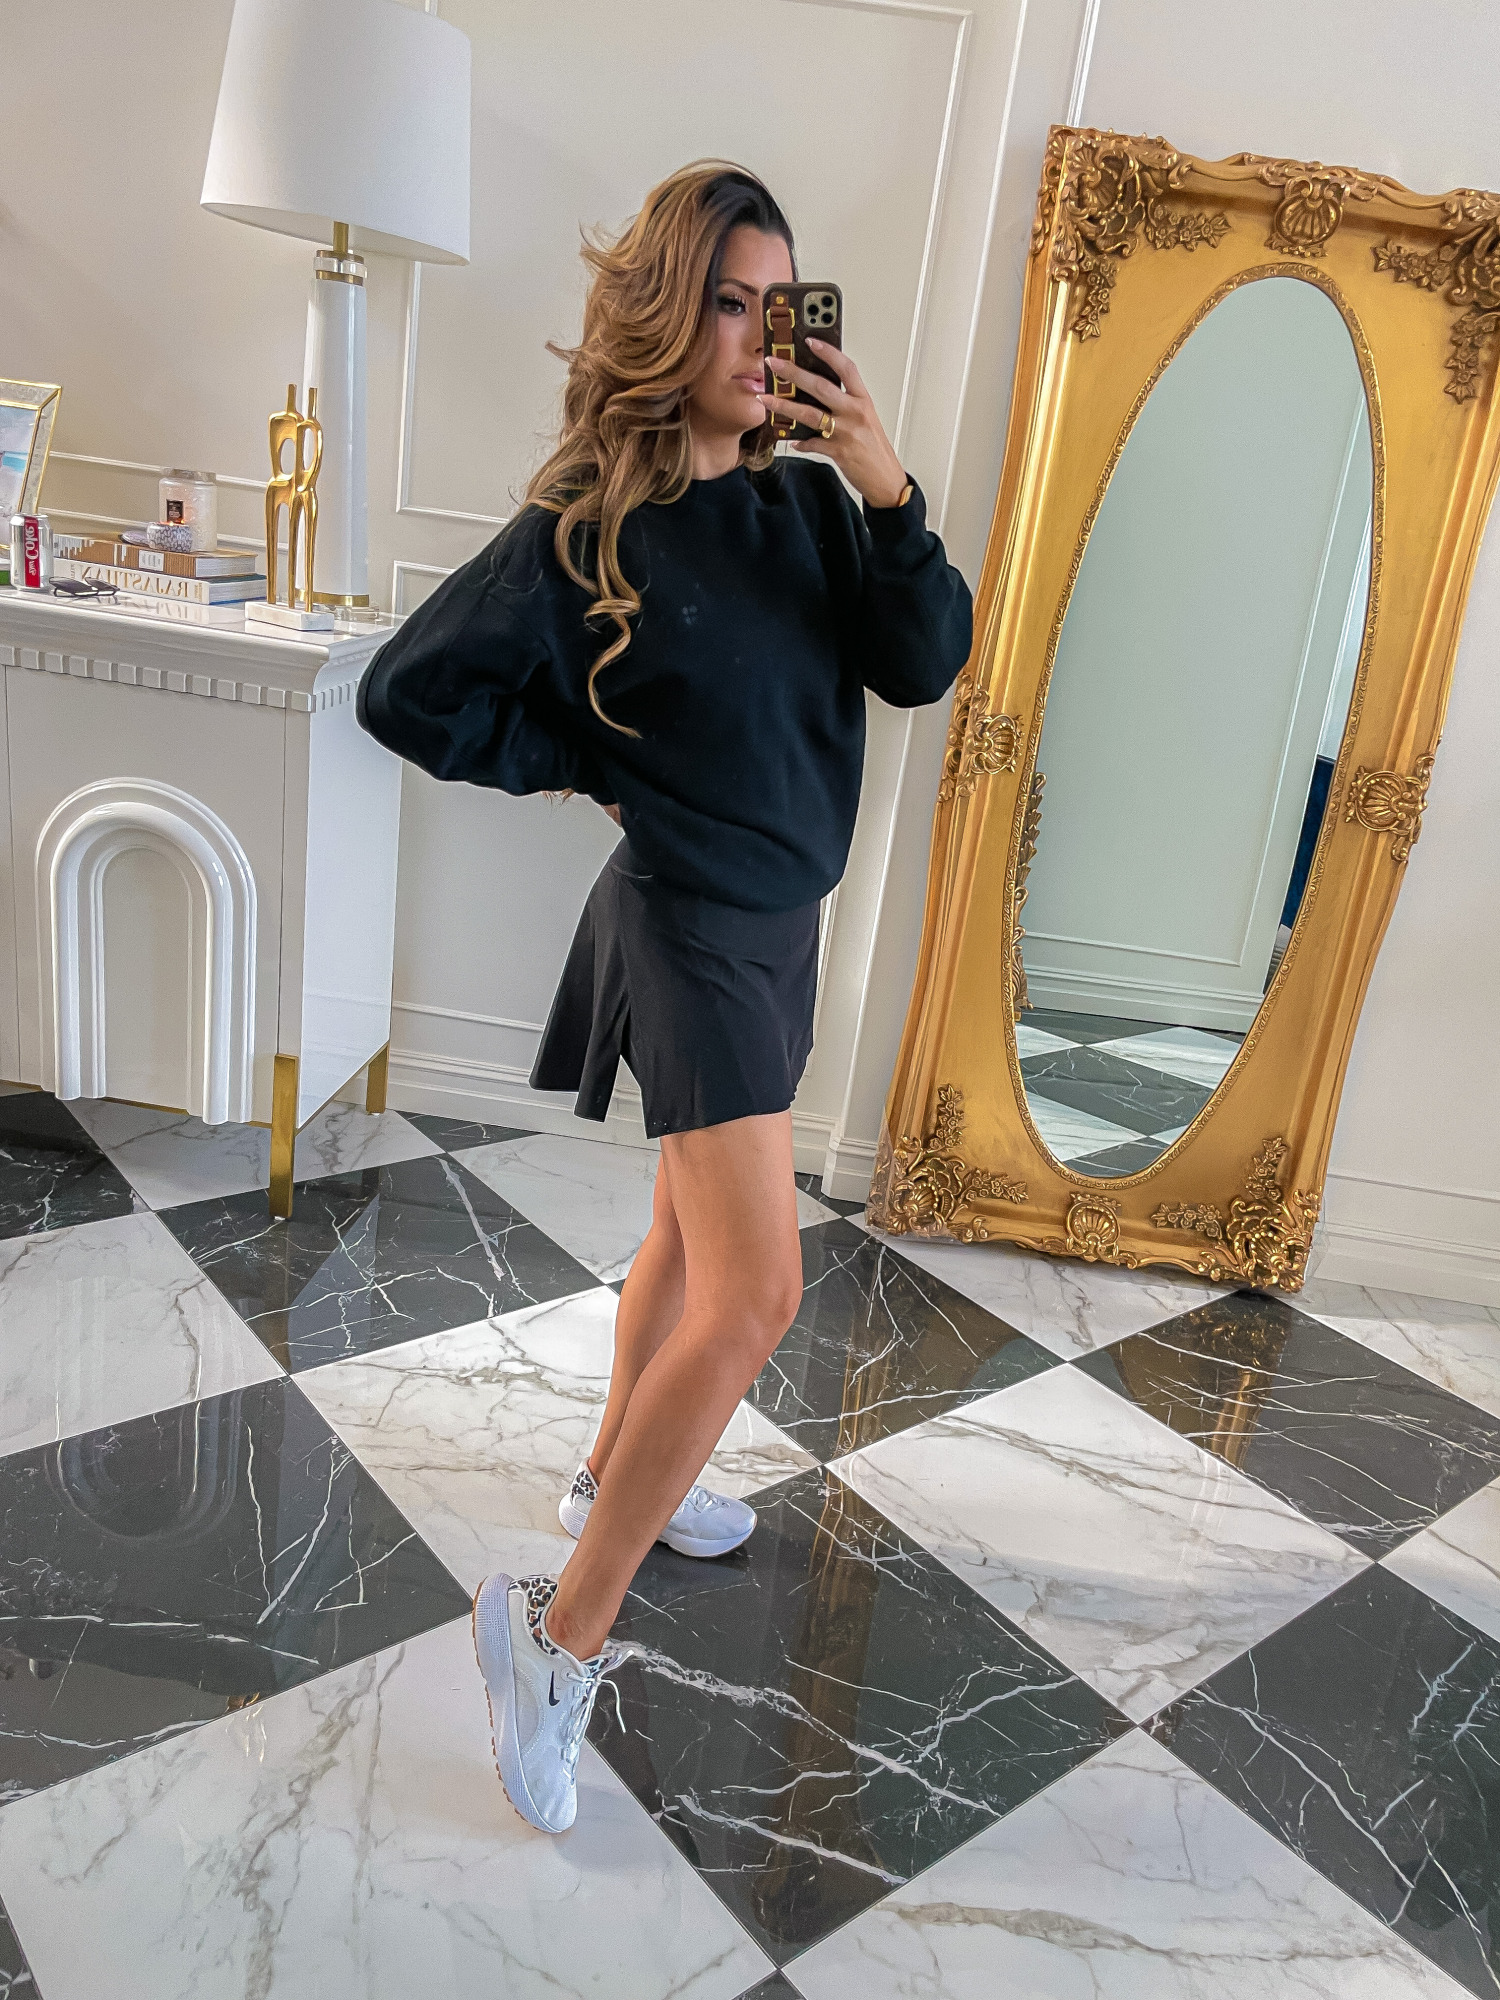 dstrom Anniversary Sale 2021 Picks, best of NSALE 2021, Nordstrom sale must haves blog post, Emily gemma9 |  Nordstrom Anniversary Sale US fashion blog, The Sweetest Thing: image of Emily Gemma wearing a Nordstrom black sweatshirt, black athletic skirt, and leopard print nike sneakers.